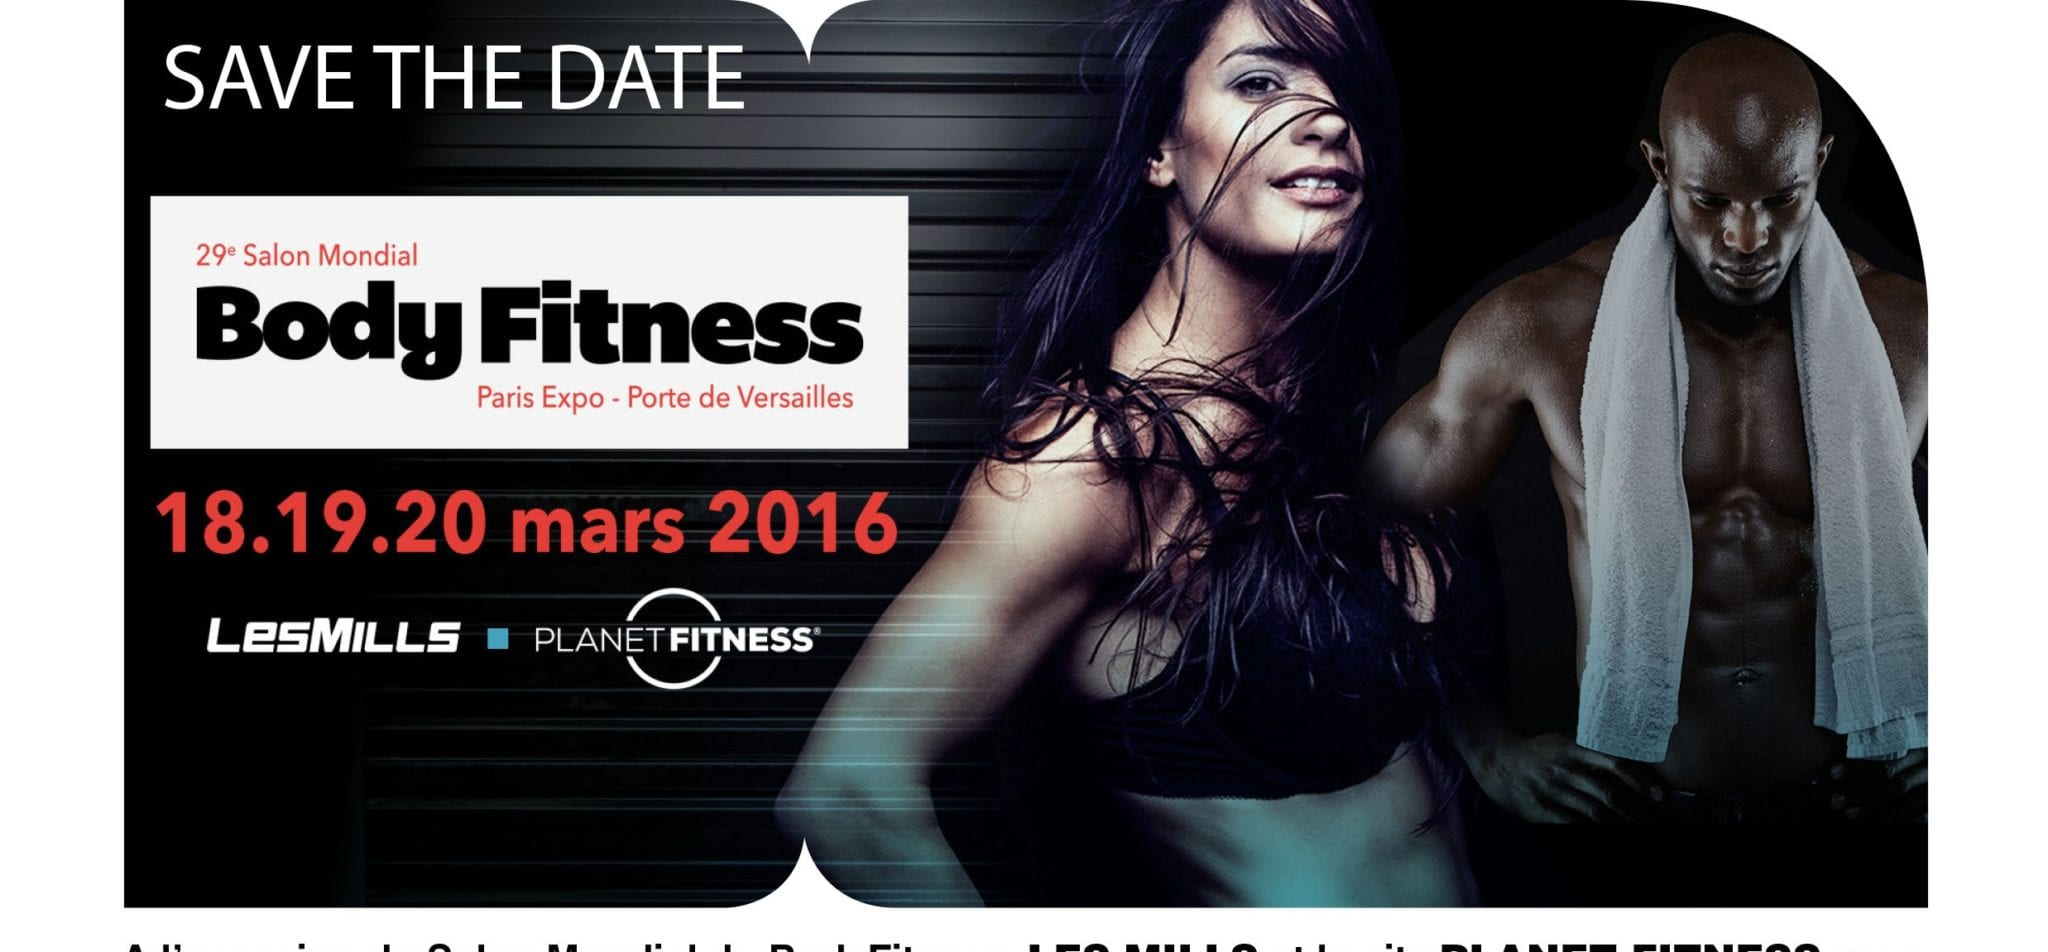 Salon Du Fitness 2017 Les Mills Et Le Site Planet Fitness Au Salon Mondial Du